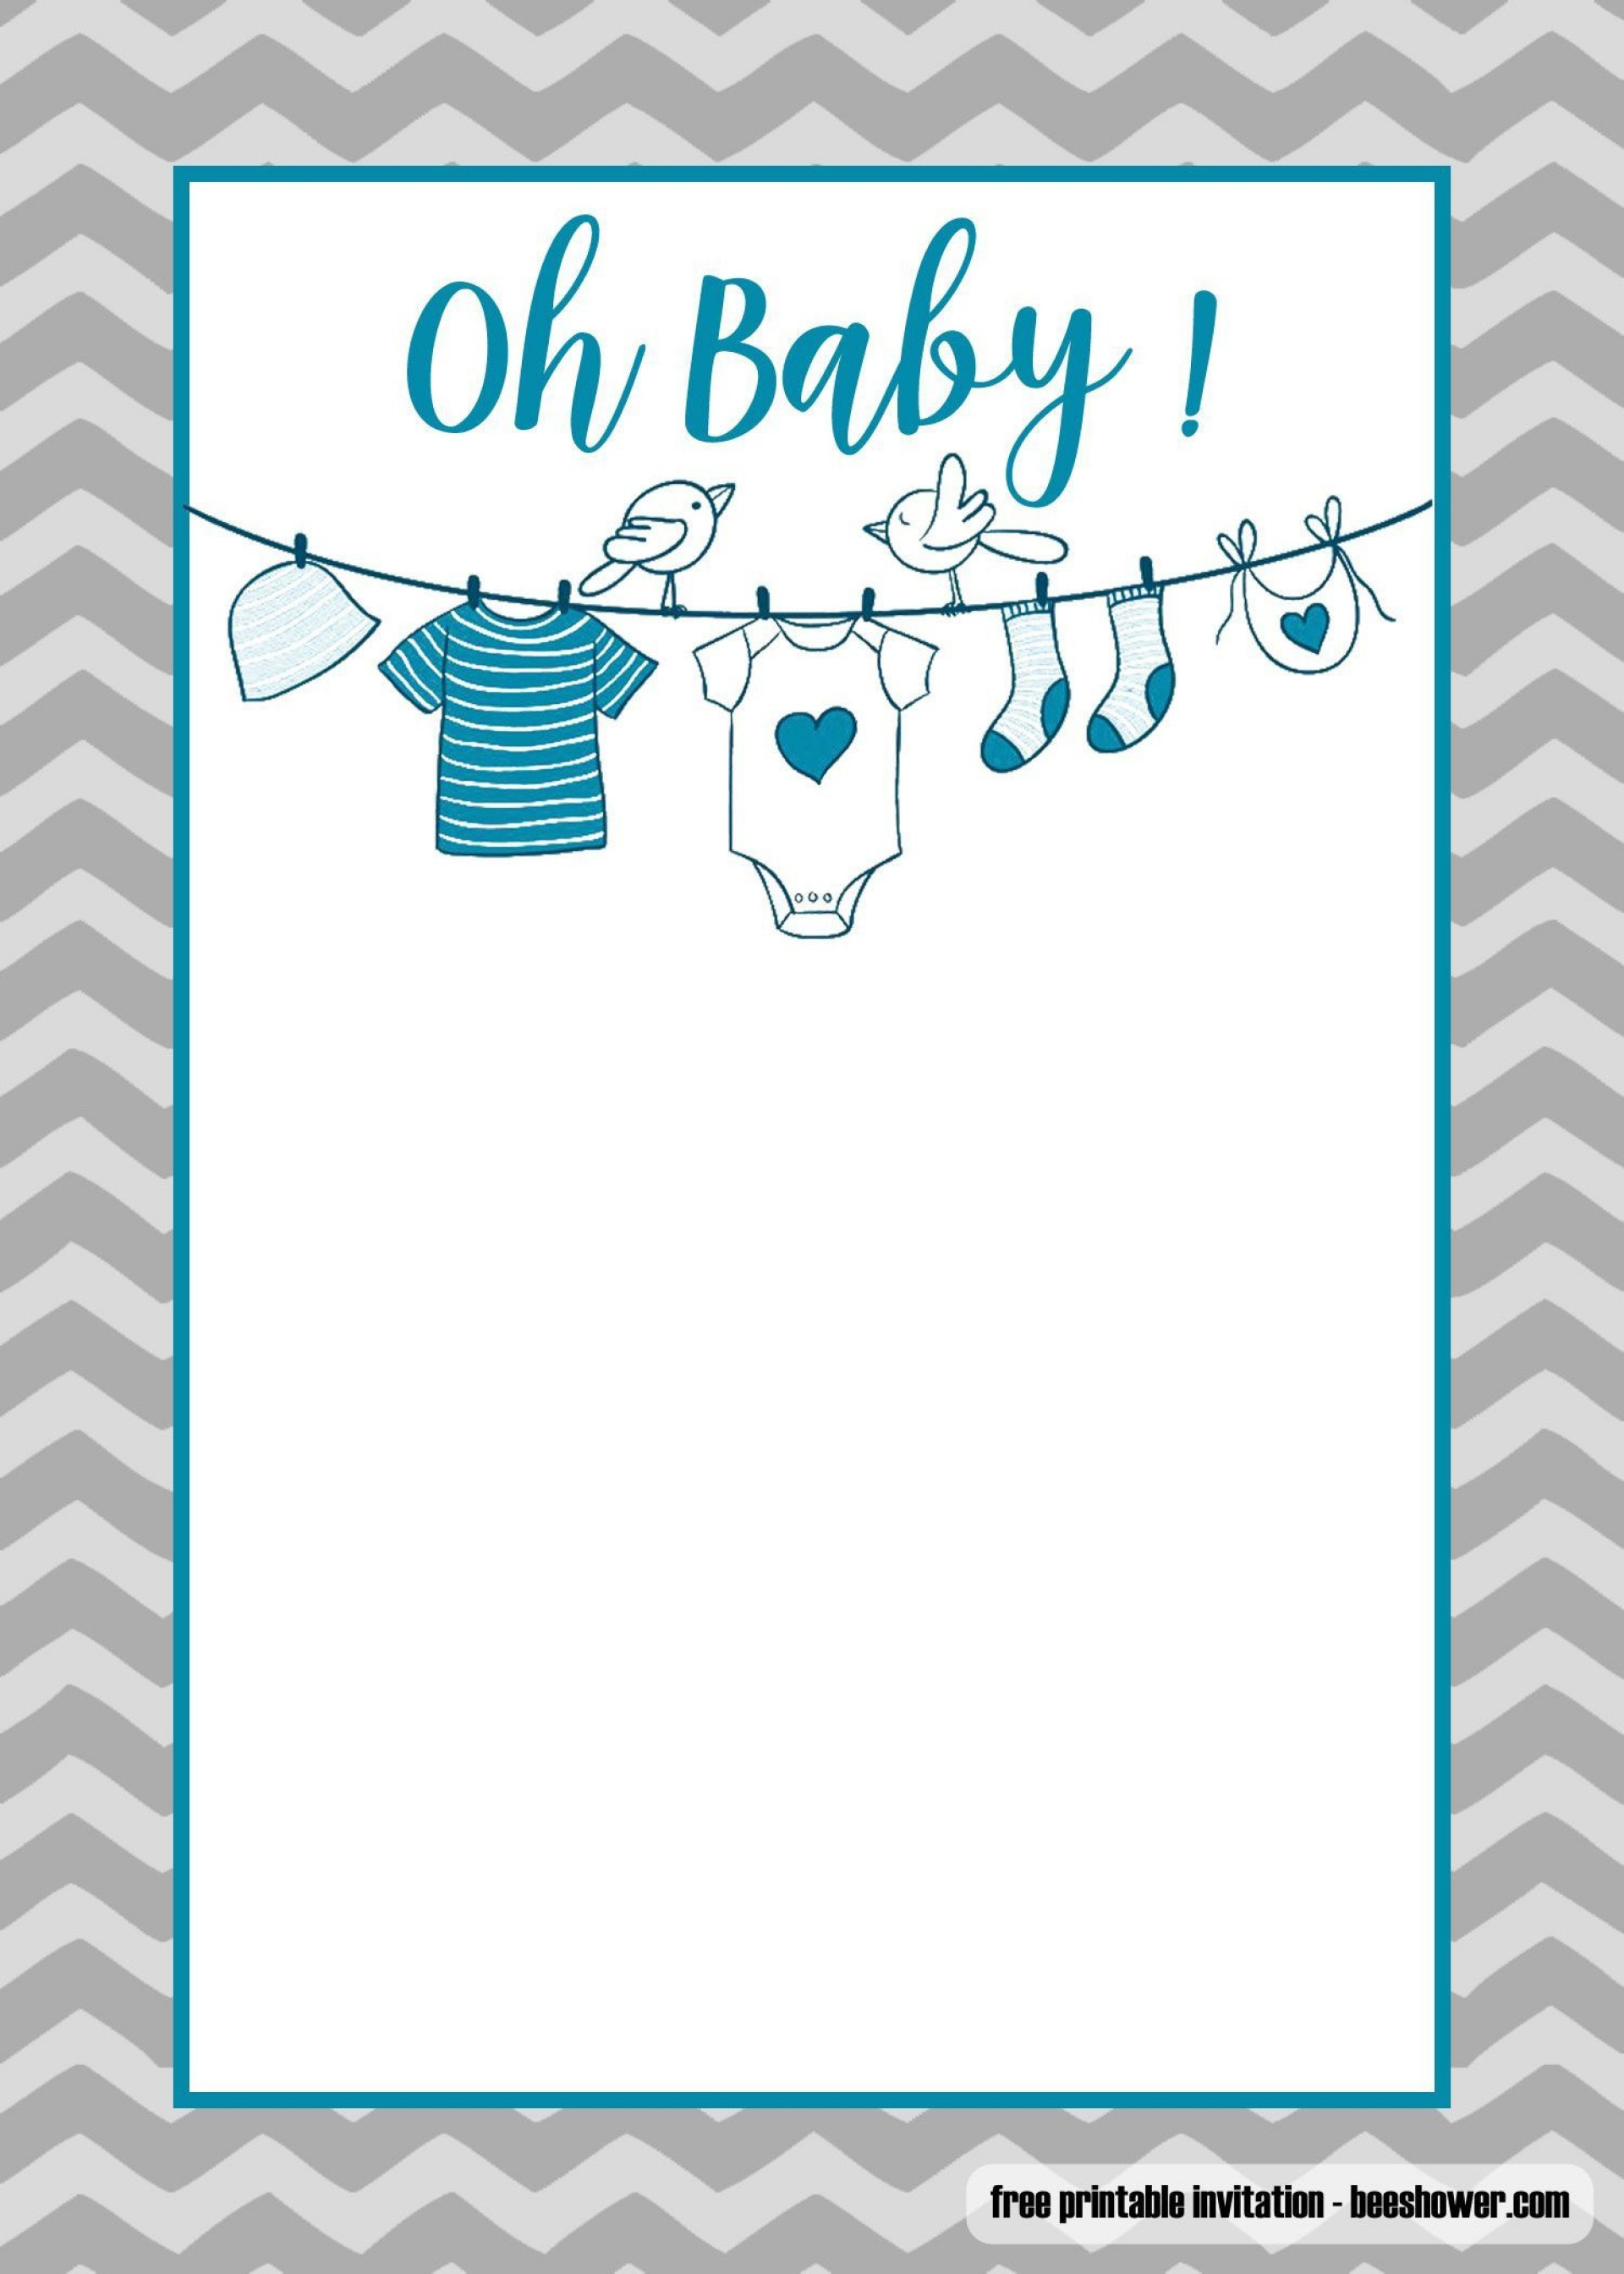 007 Formidable Baby Shower Card Template Free Download Highest Quality  Indian Invitation1920